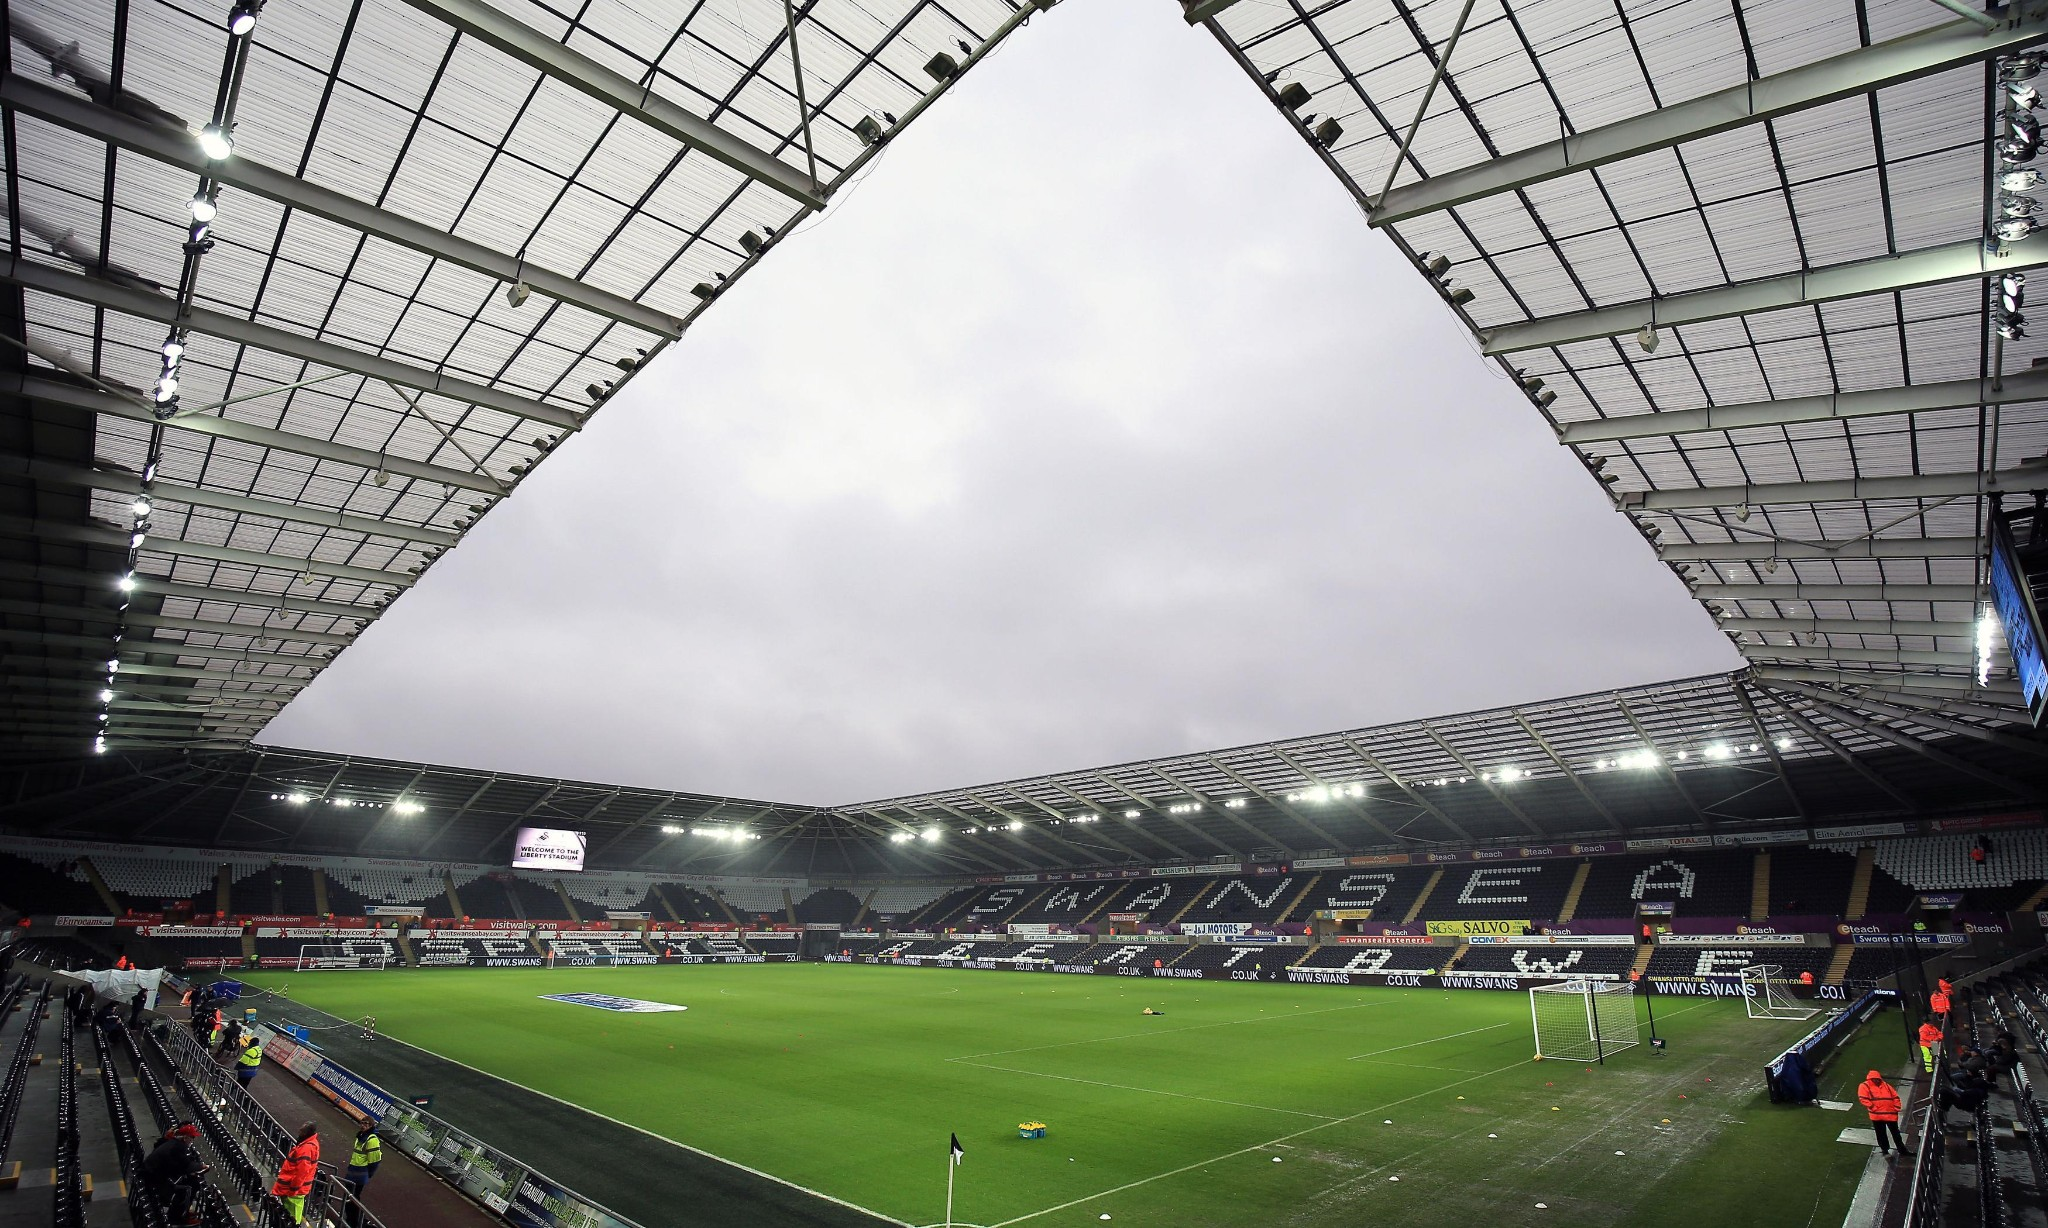 Swansea City's owners to make huge profit with sale to US investors